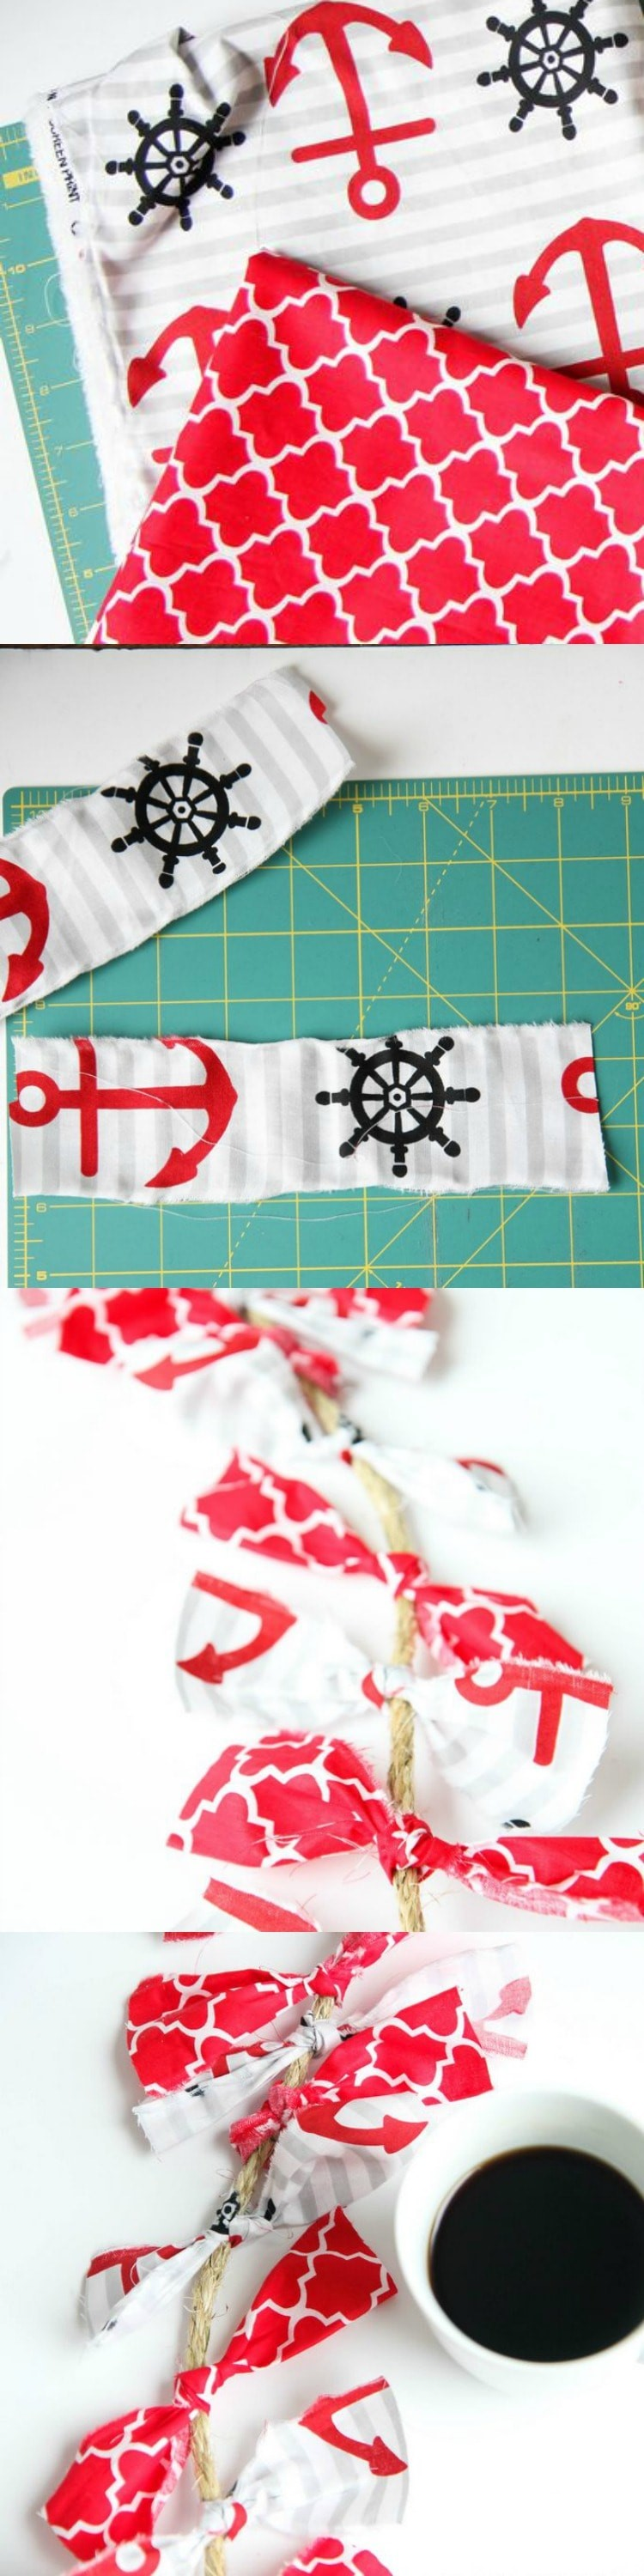 How to Make a Fabric Rope Garland from MomAdvice.com